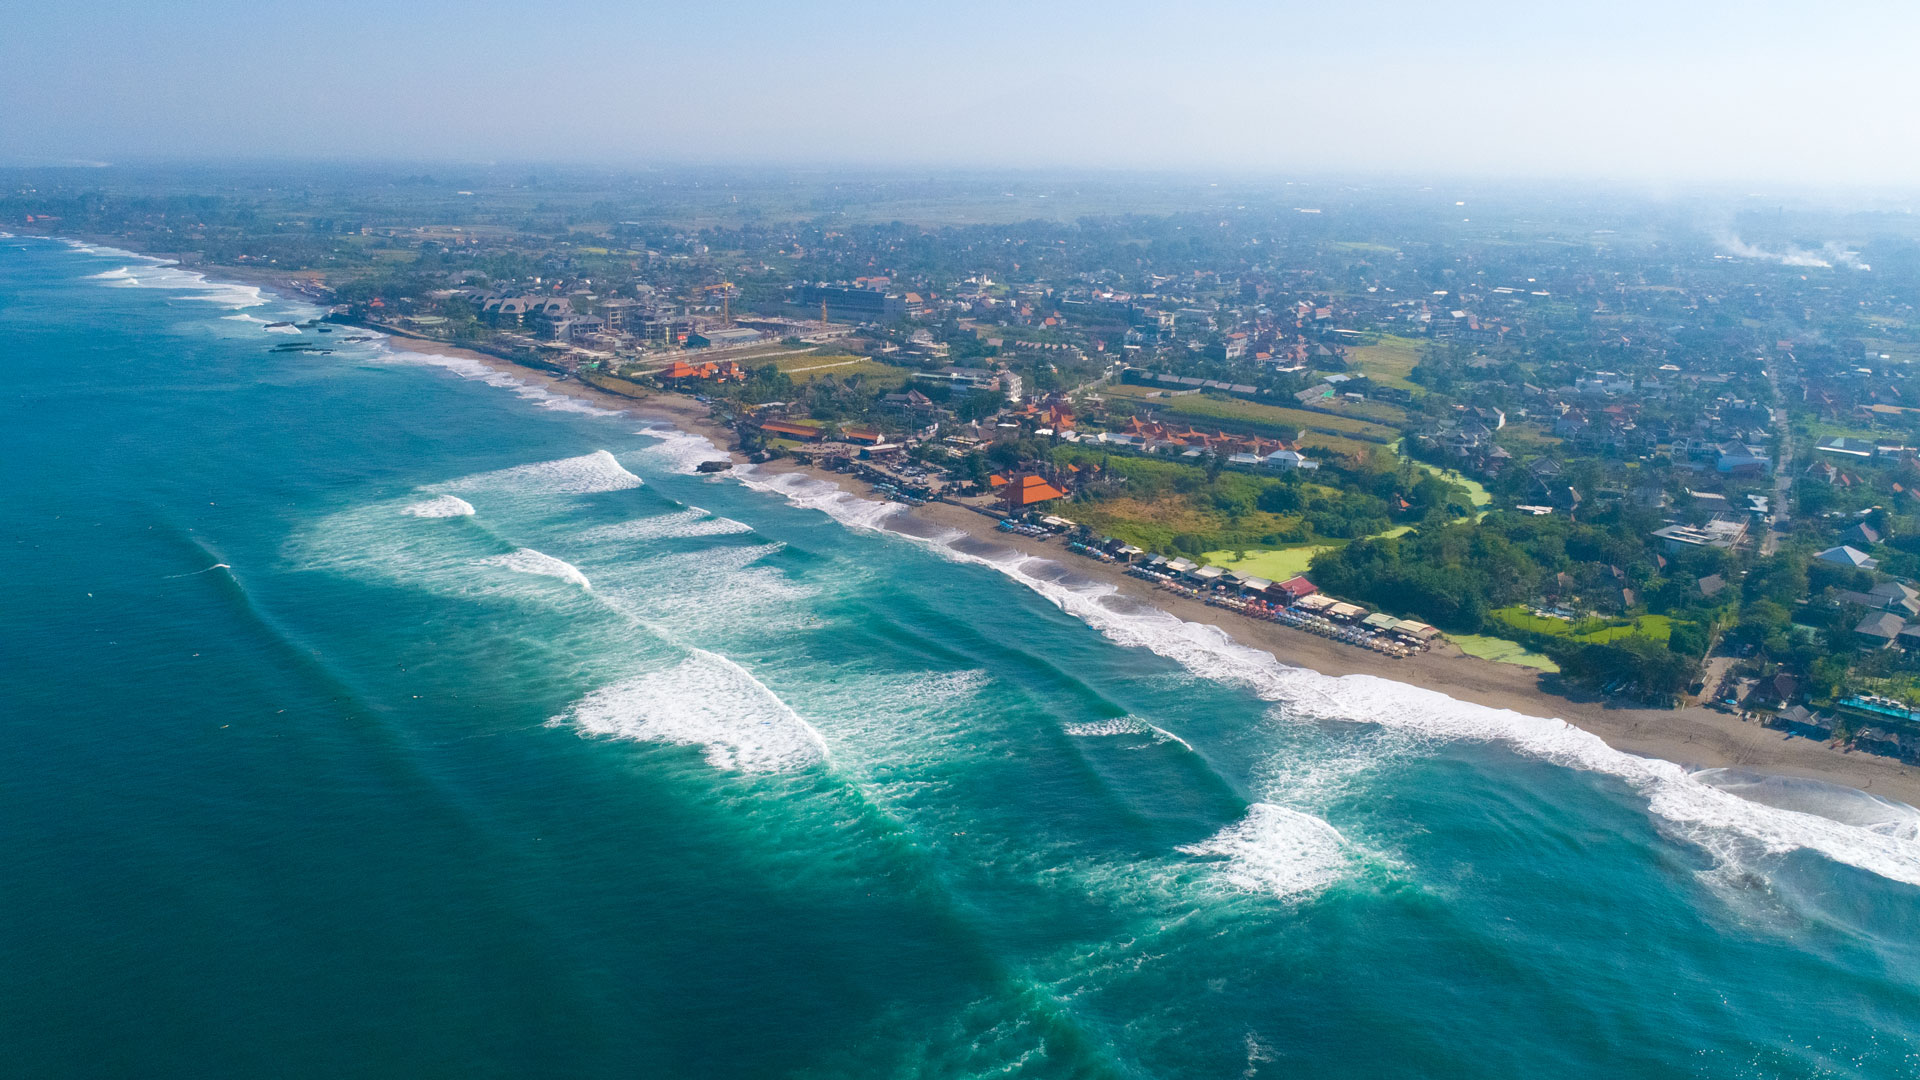 Canggu Travel Guide - Ultimate Bali